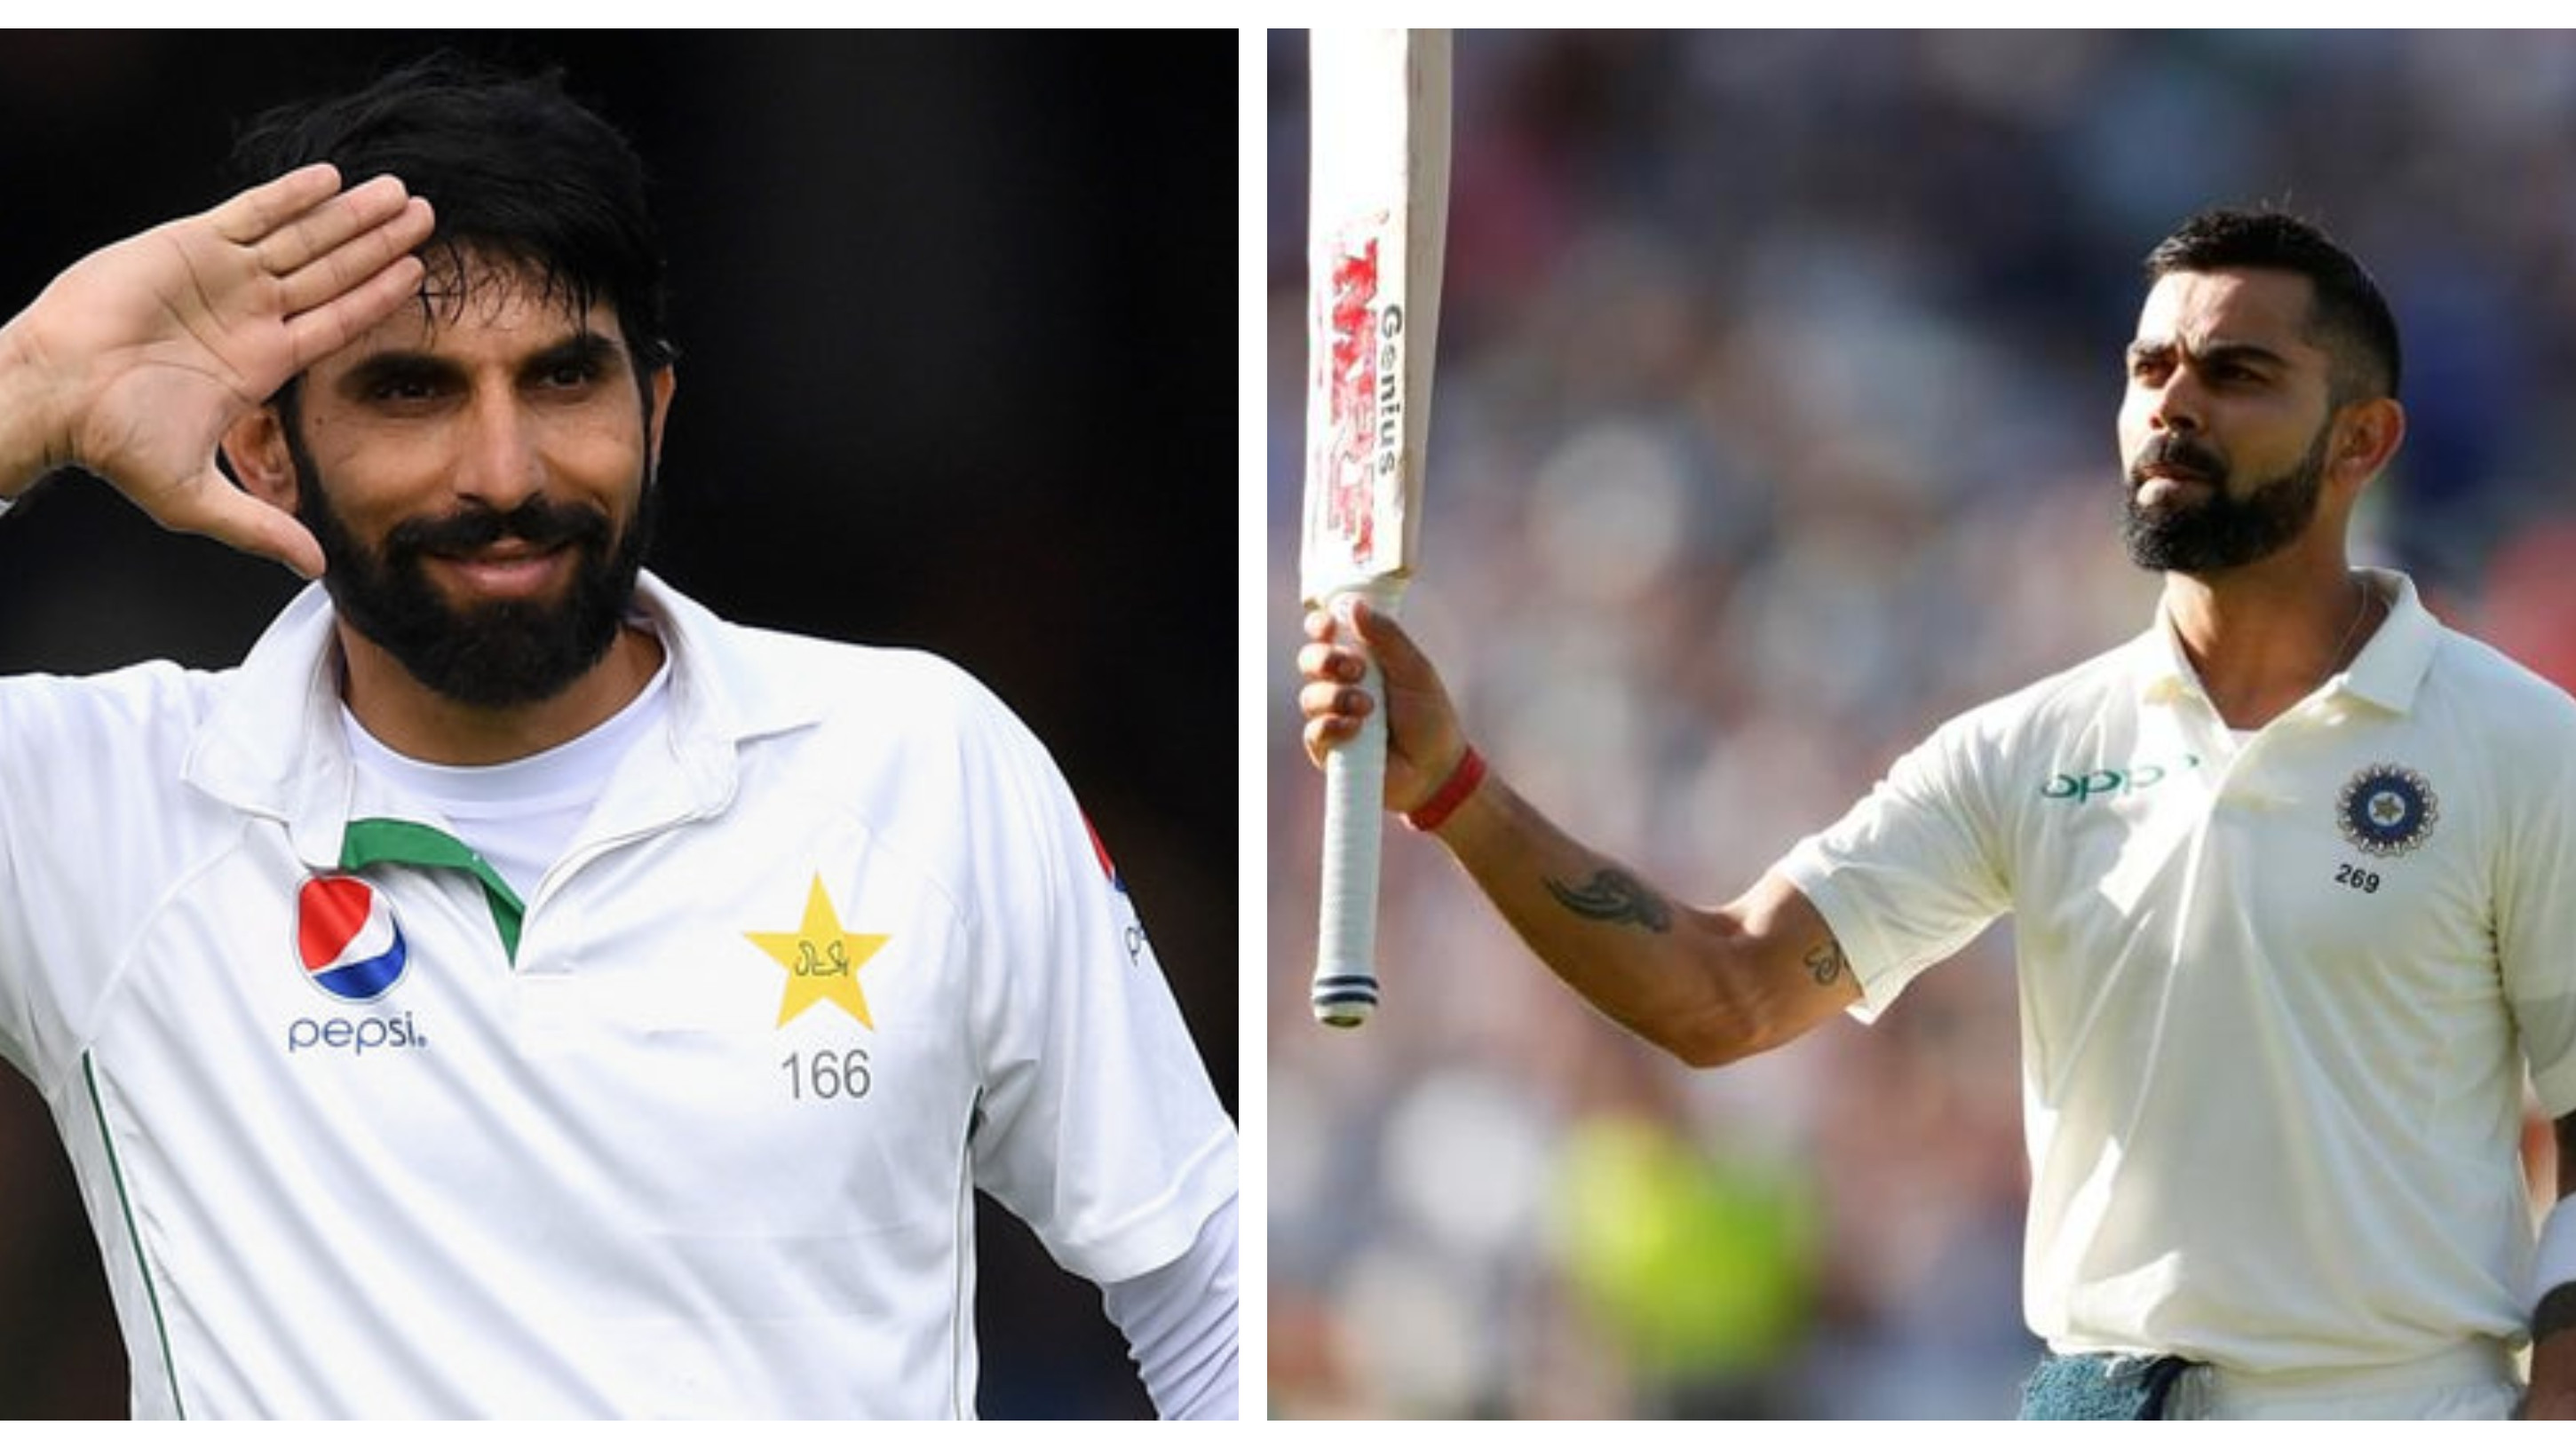 ENG vs IND 2018: Virat Kohli capable of breaking many records in the future, says Misbah-ul-Haq